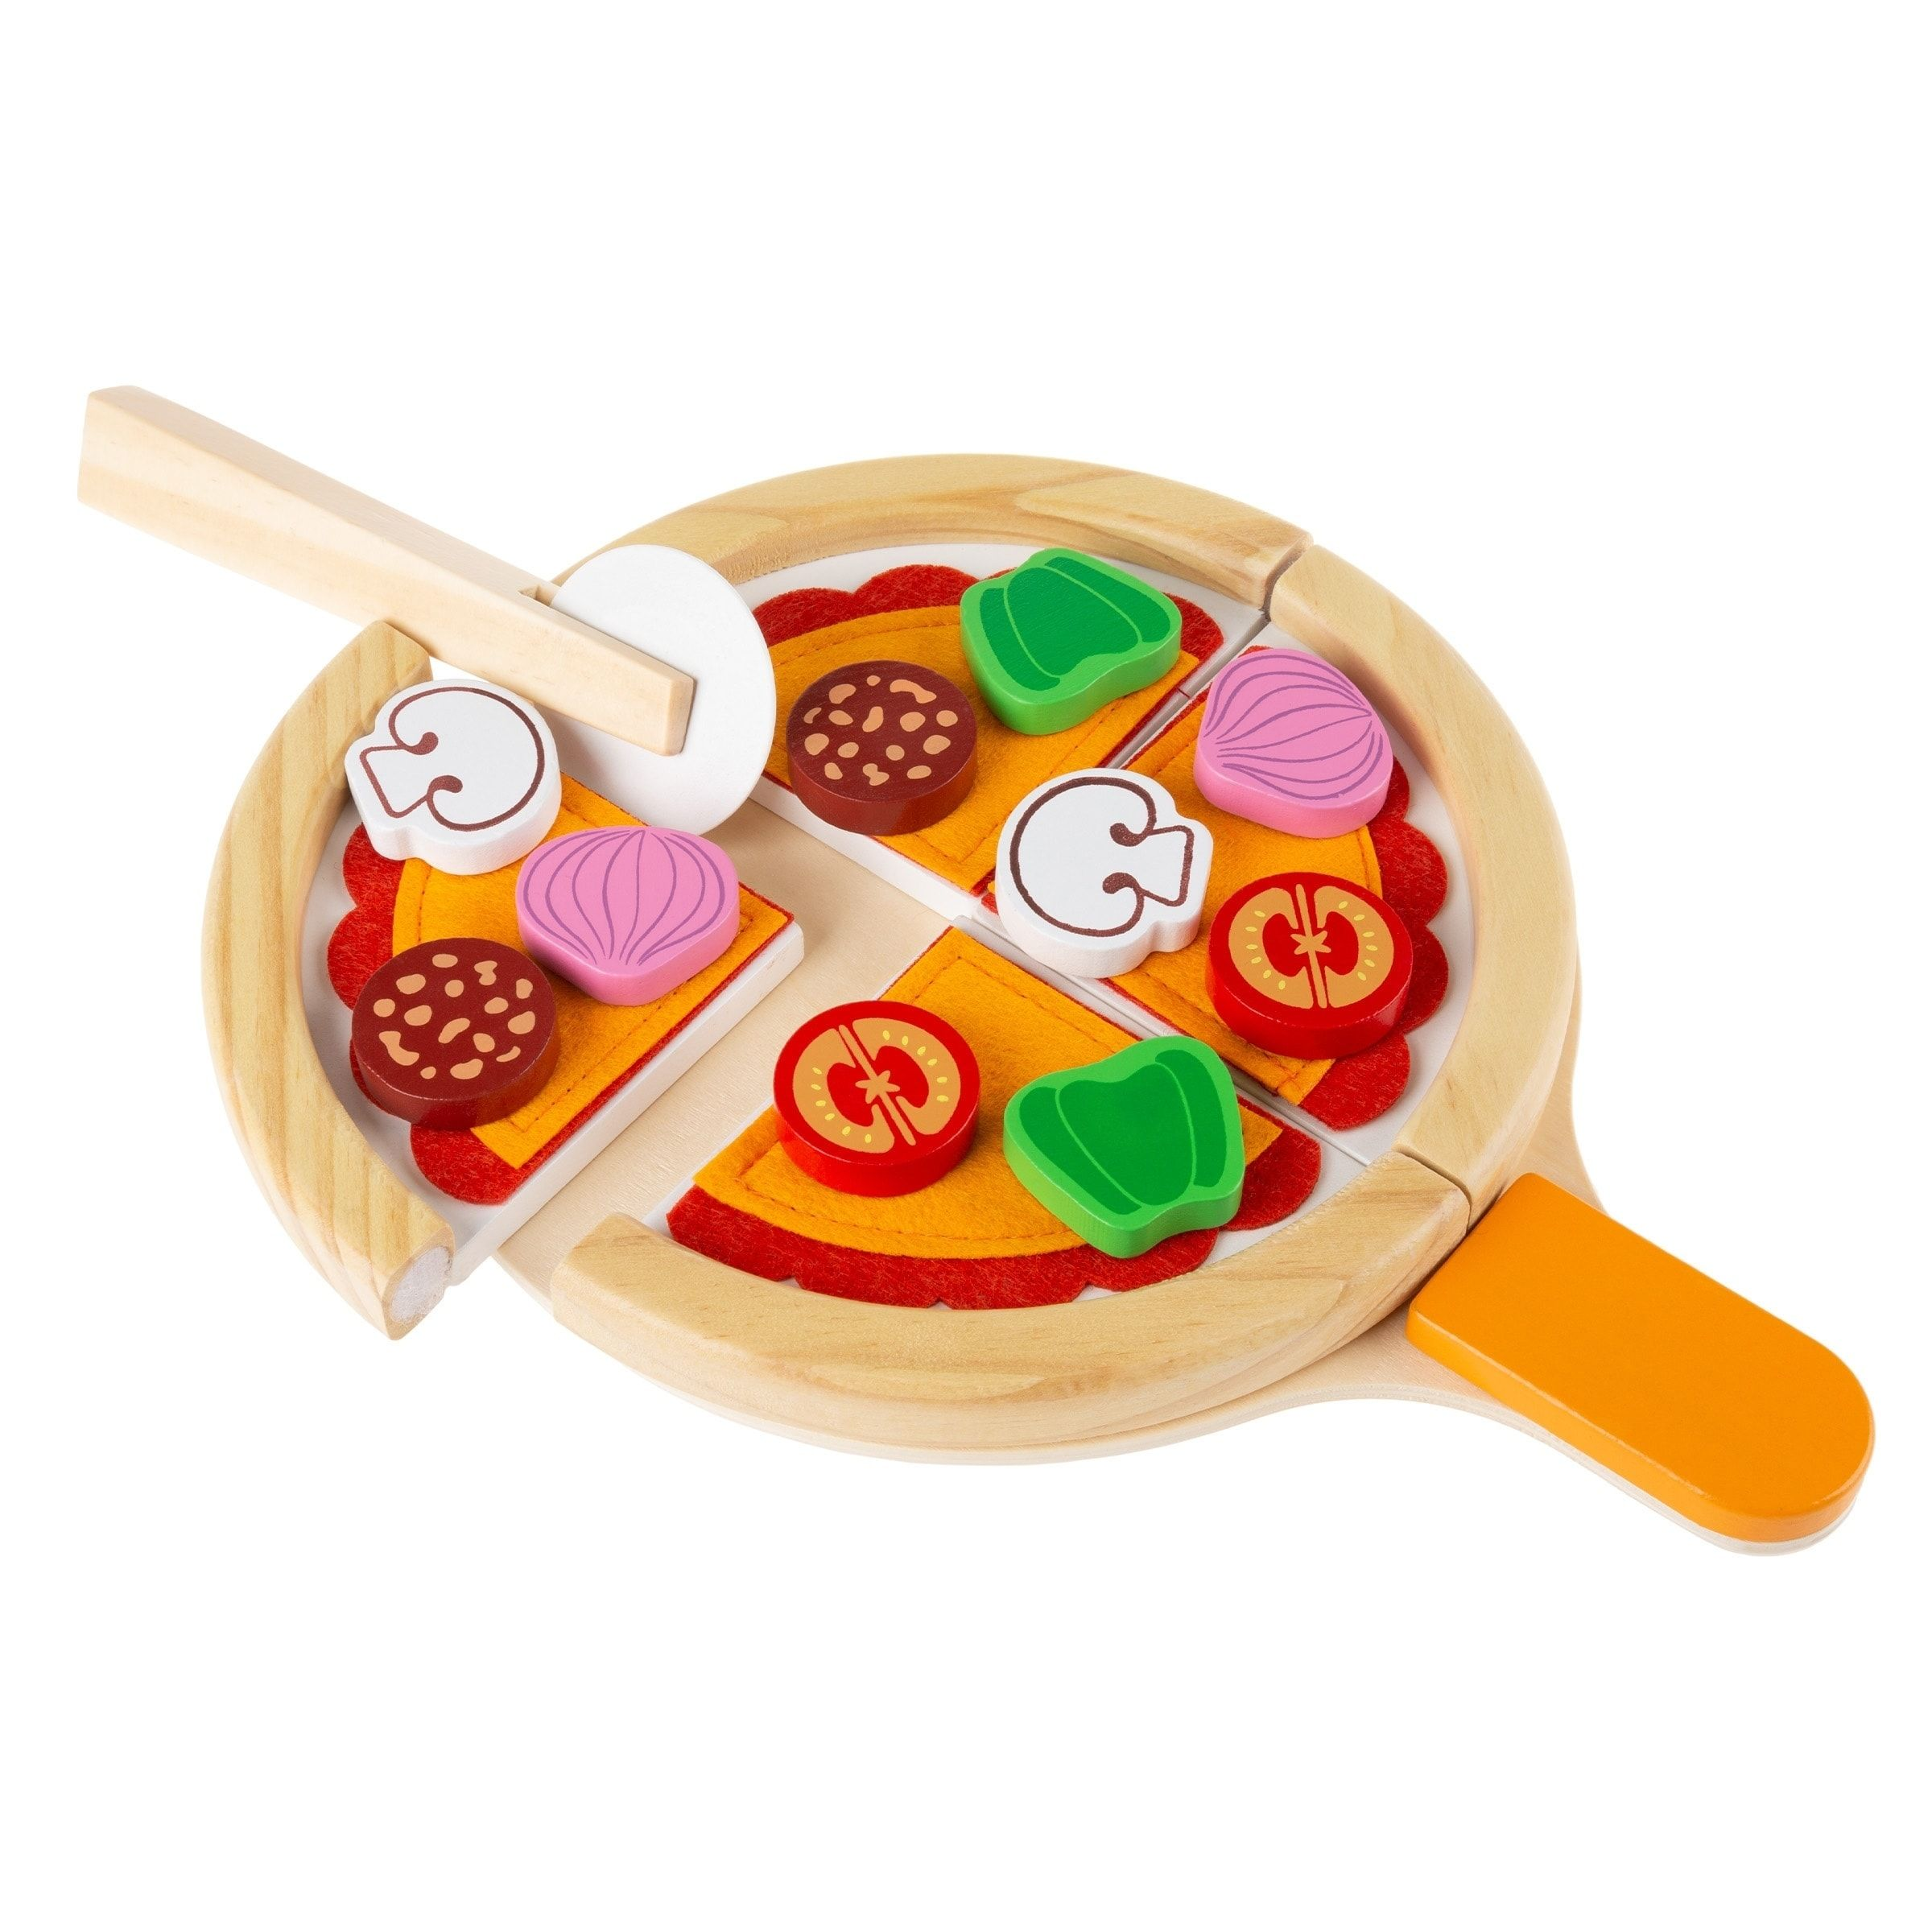 Pretend Play Pizza Set-Wooden Toy Food By Hey! Play